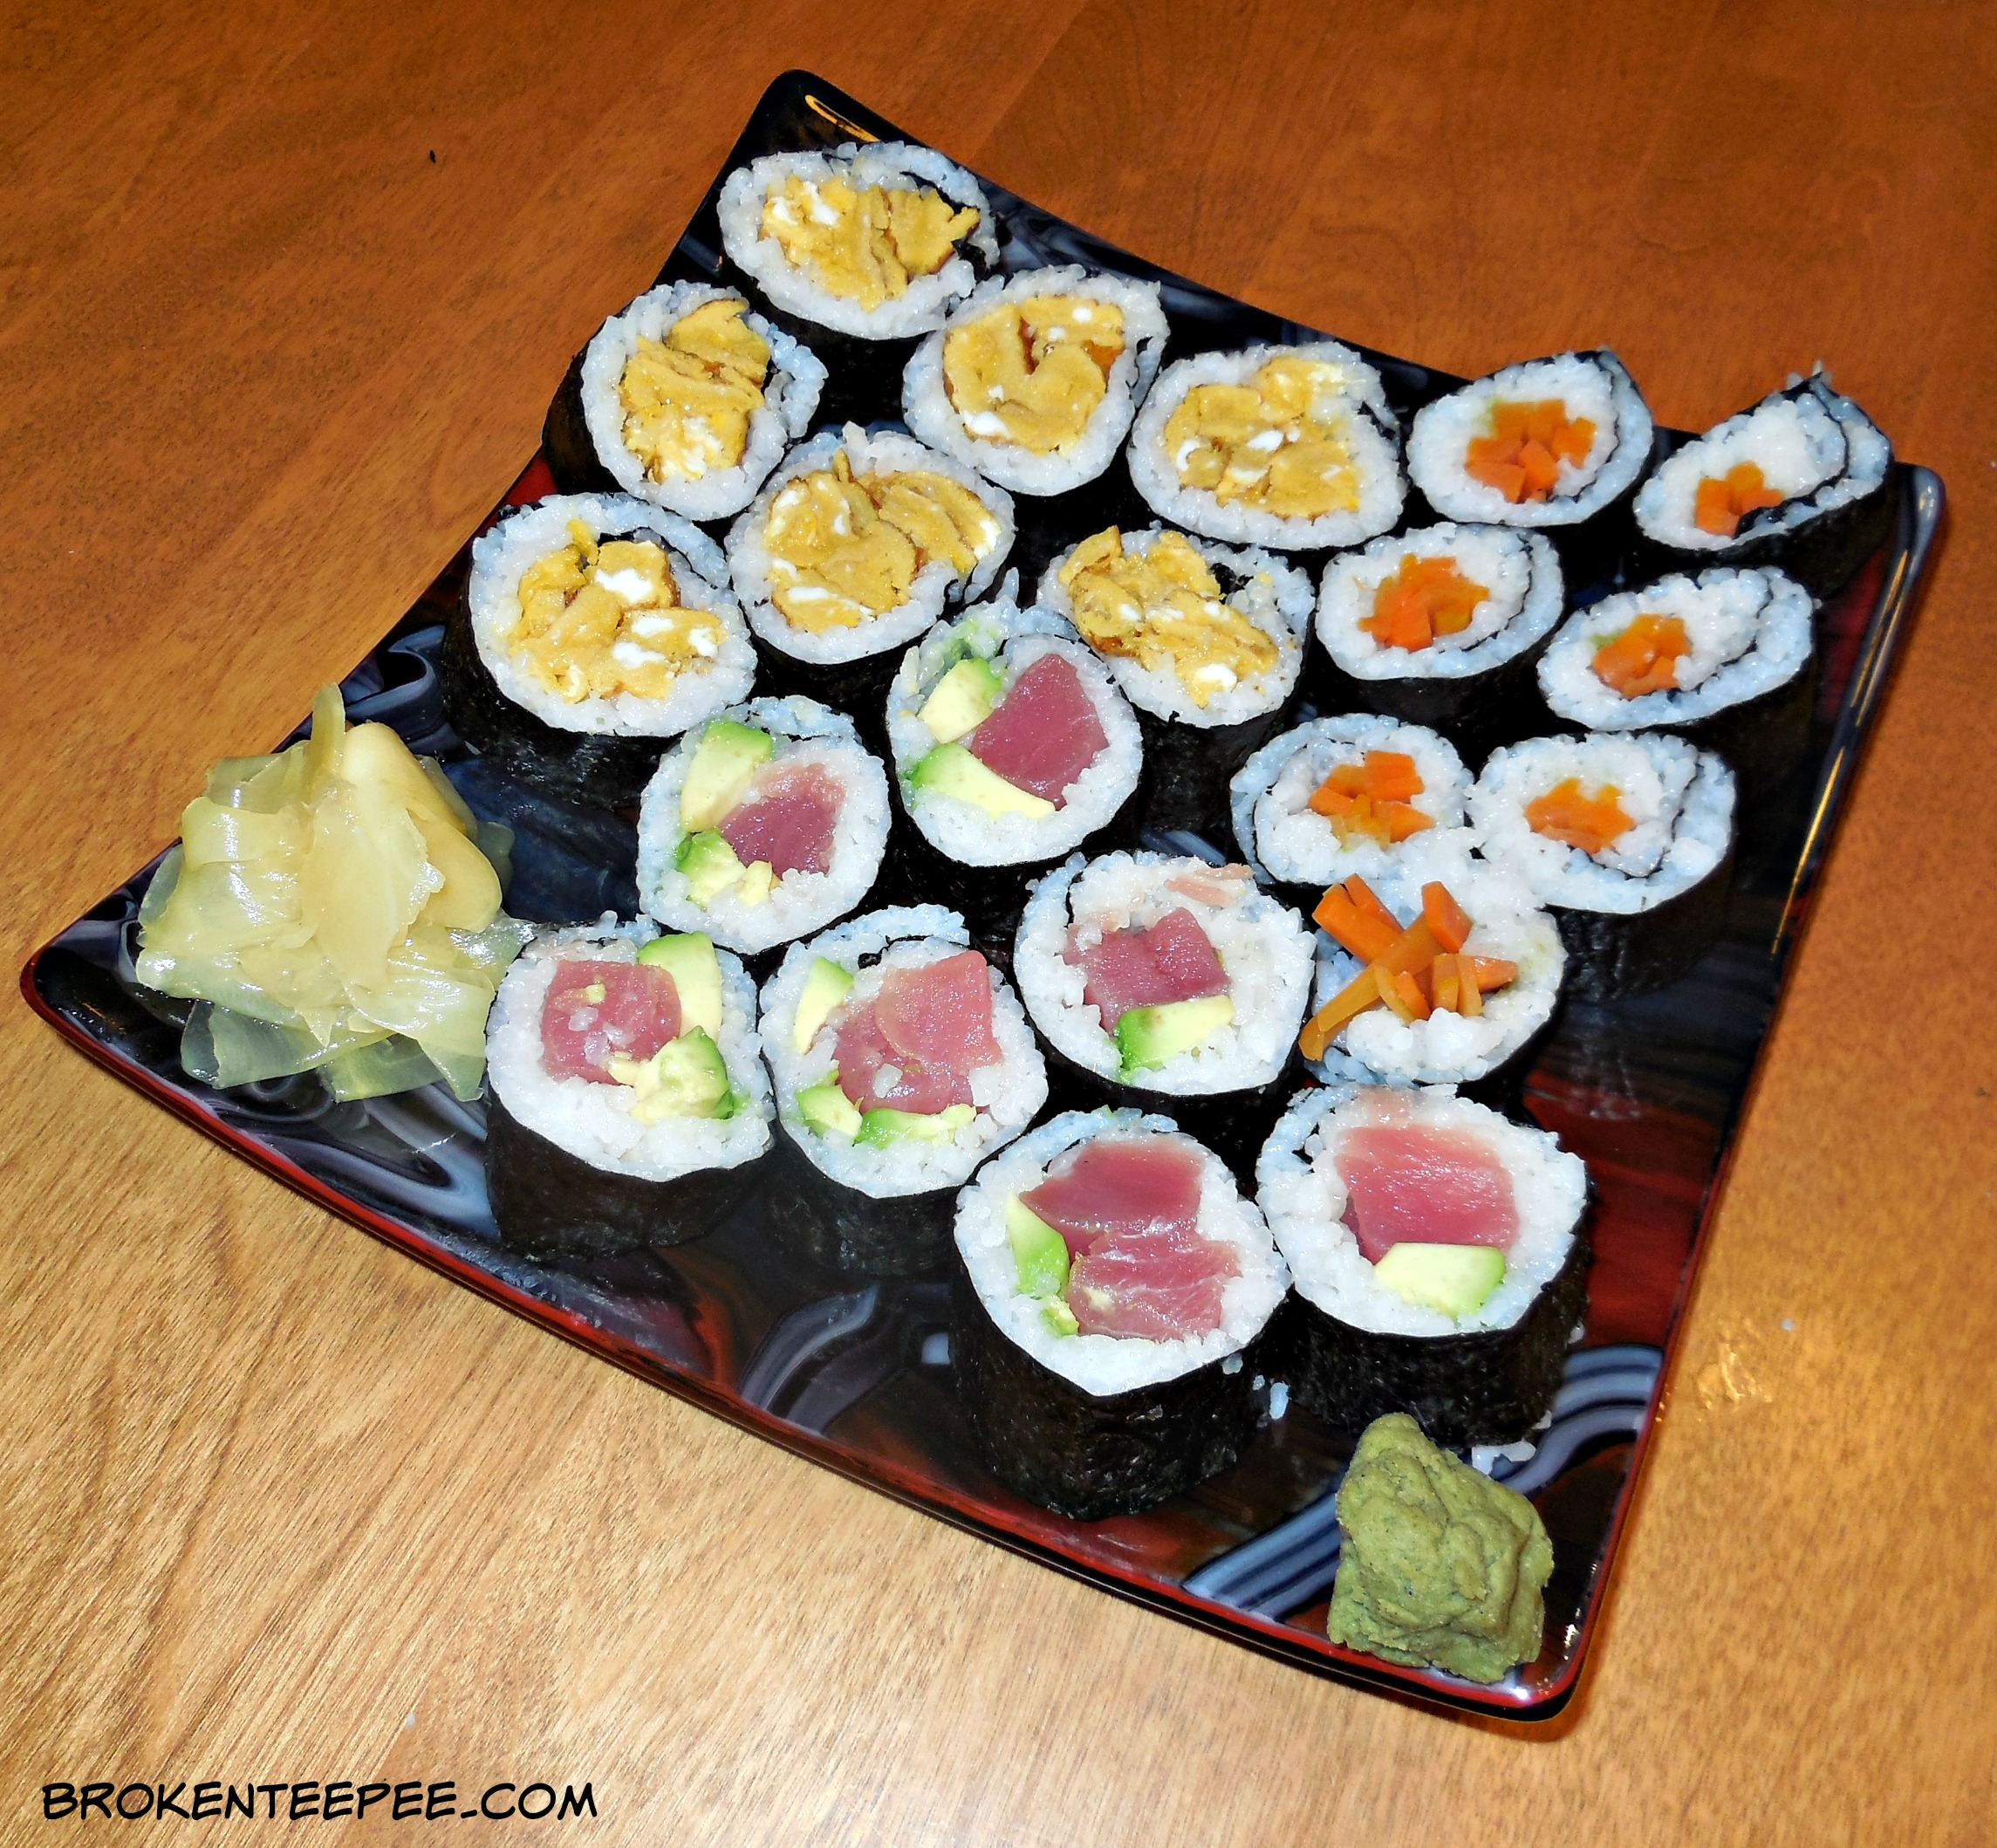 It's Easy to Make Sushi at Home